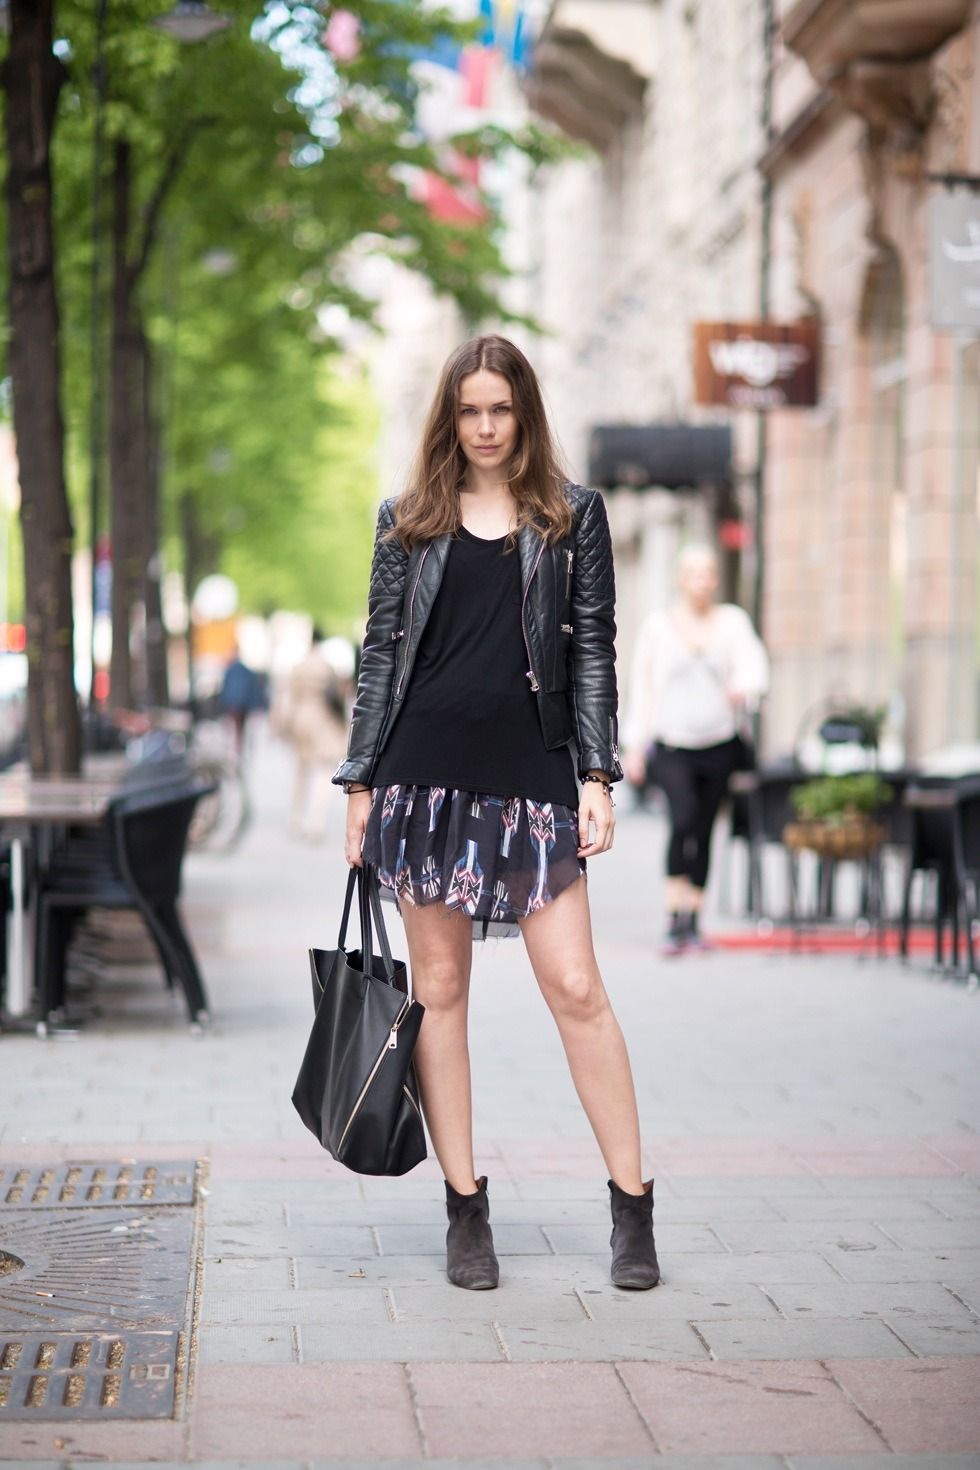 Skirt + boots from Isabel Marant, tee from Wang, jacket from Balenciaga and bag from Celine.